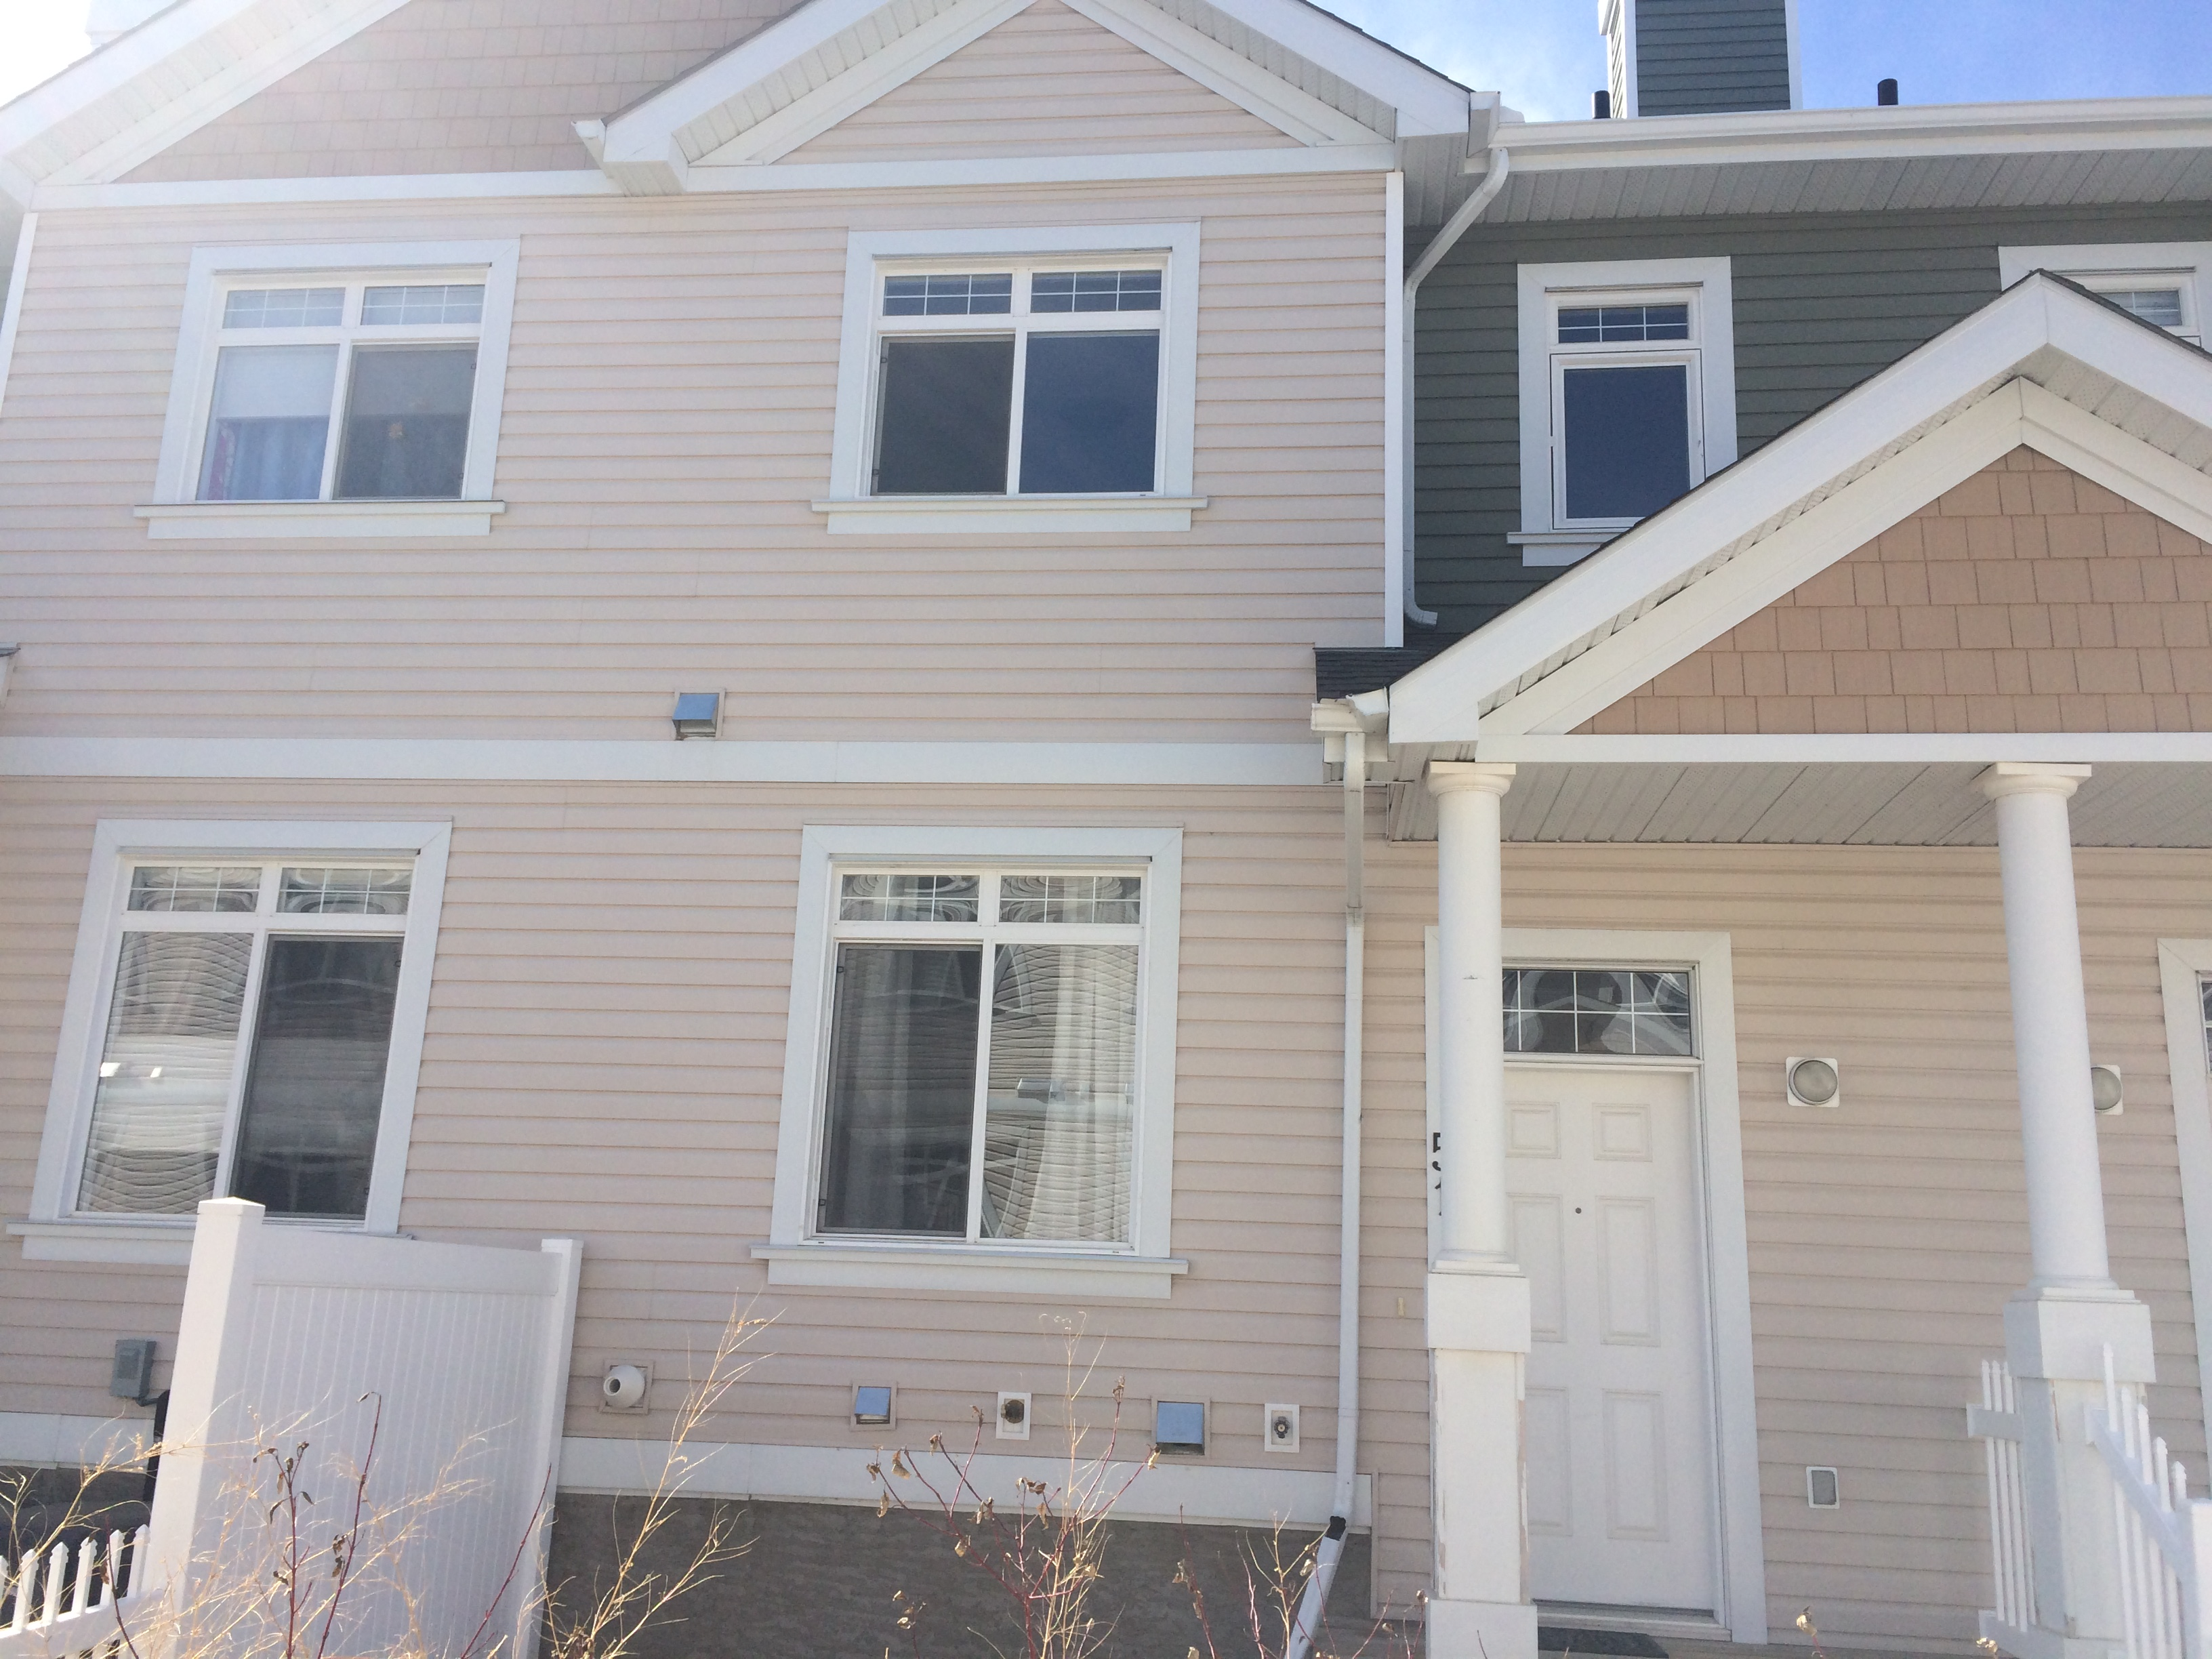 2 Master Bedroom 2 5 Bath Townhouse Summerside 3 Star Group